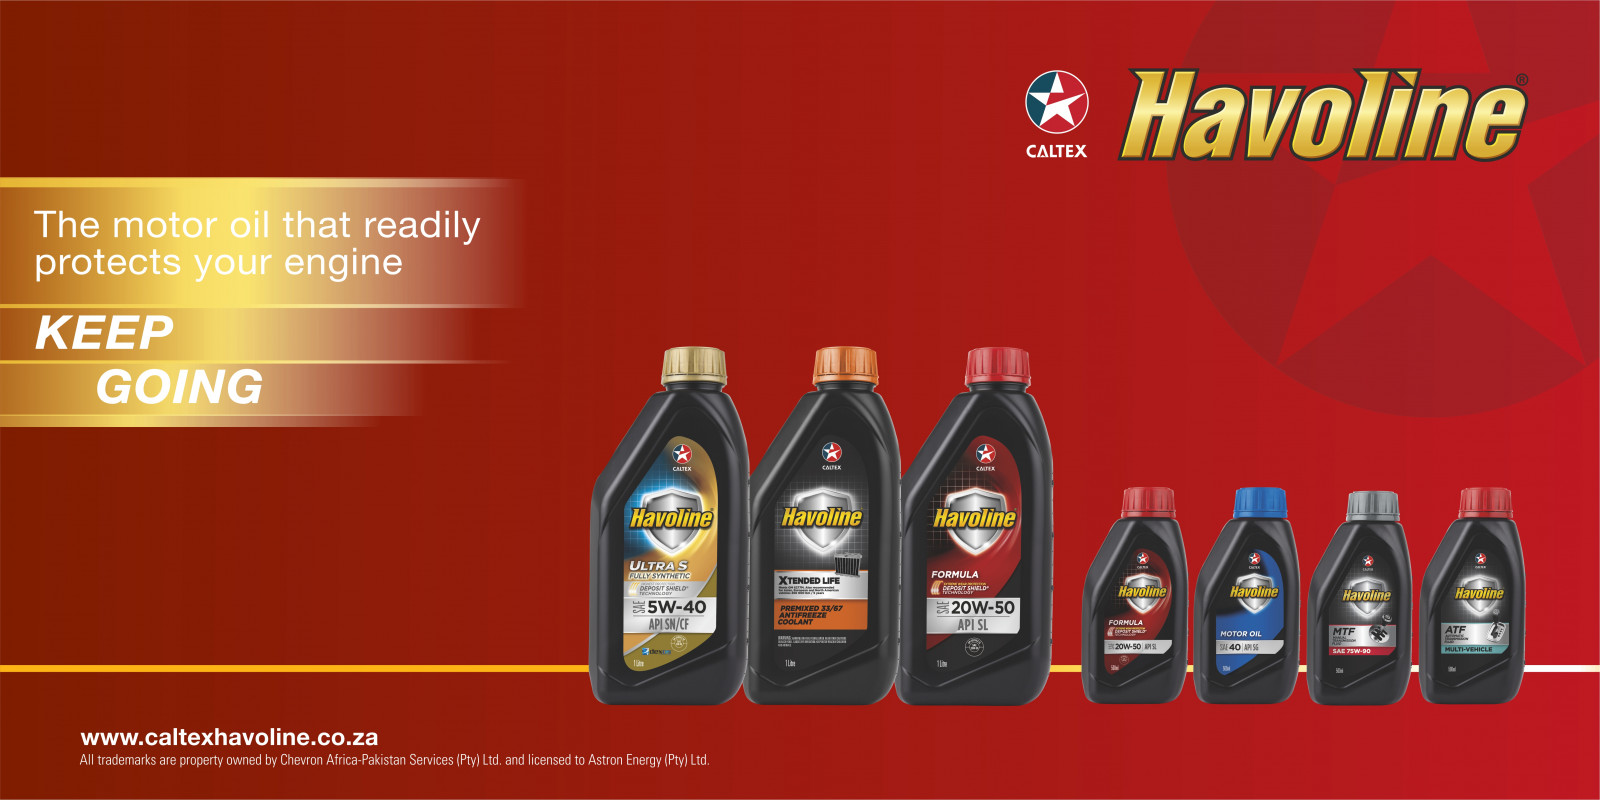 Havoline protection Retailer Forecourt signage 2450x1225 small packshots app FIN v3